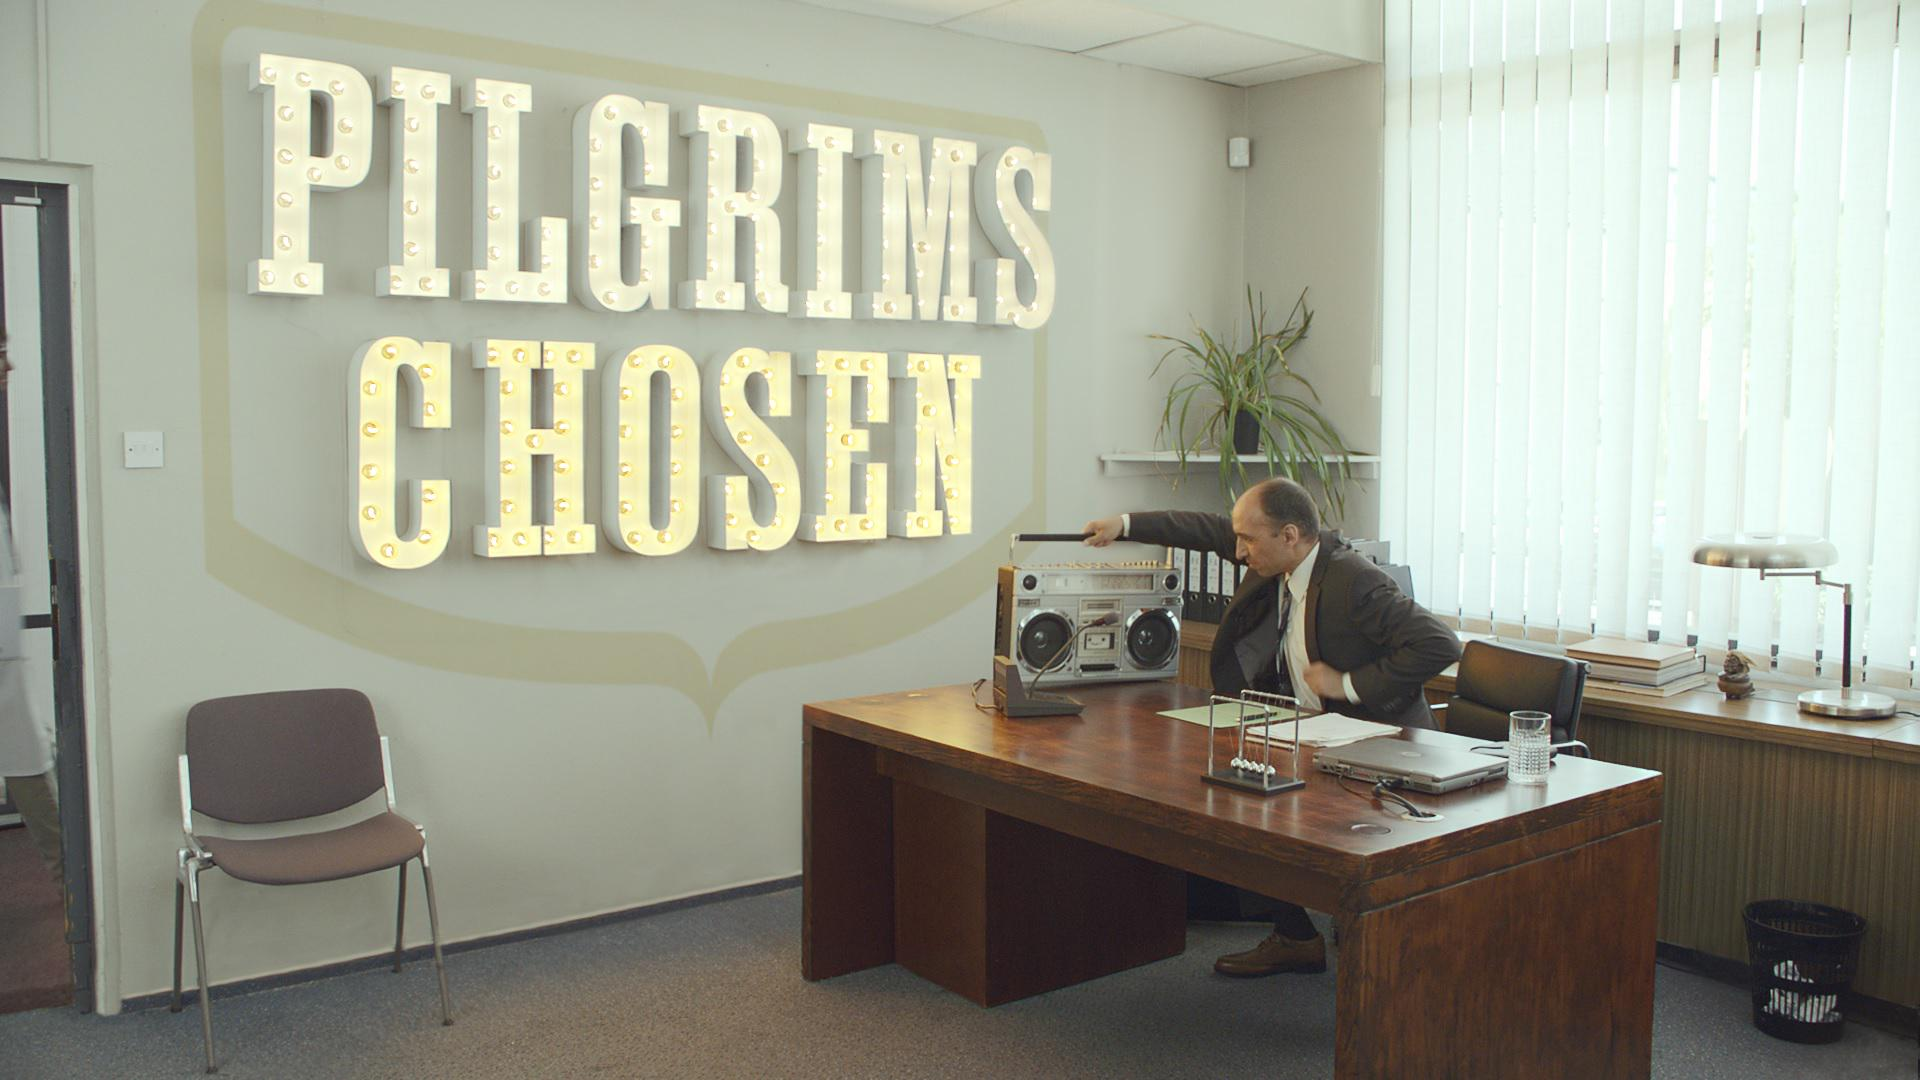 RT @TheDrum: . @PilgrimsChoice wants you, yes you, to 'Choose a Choon' for its new TV ad http://t.co/45mAwf4QfU http://t.co/OXPV18Whic